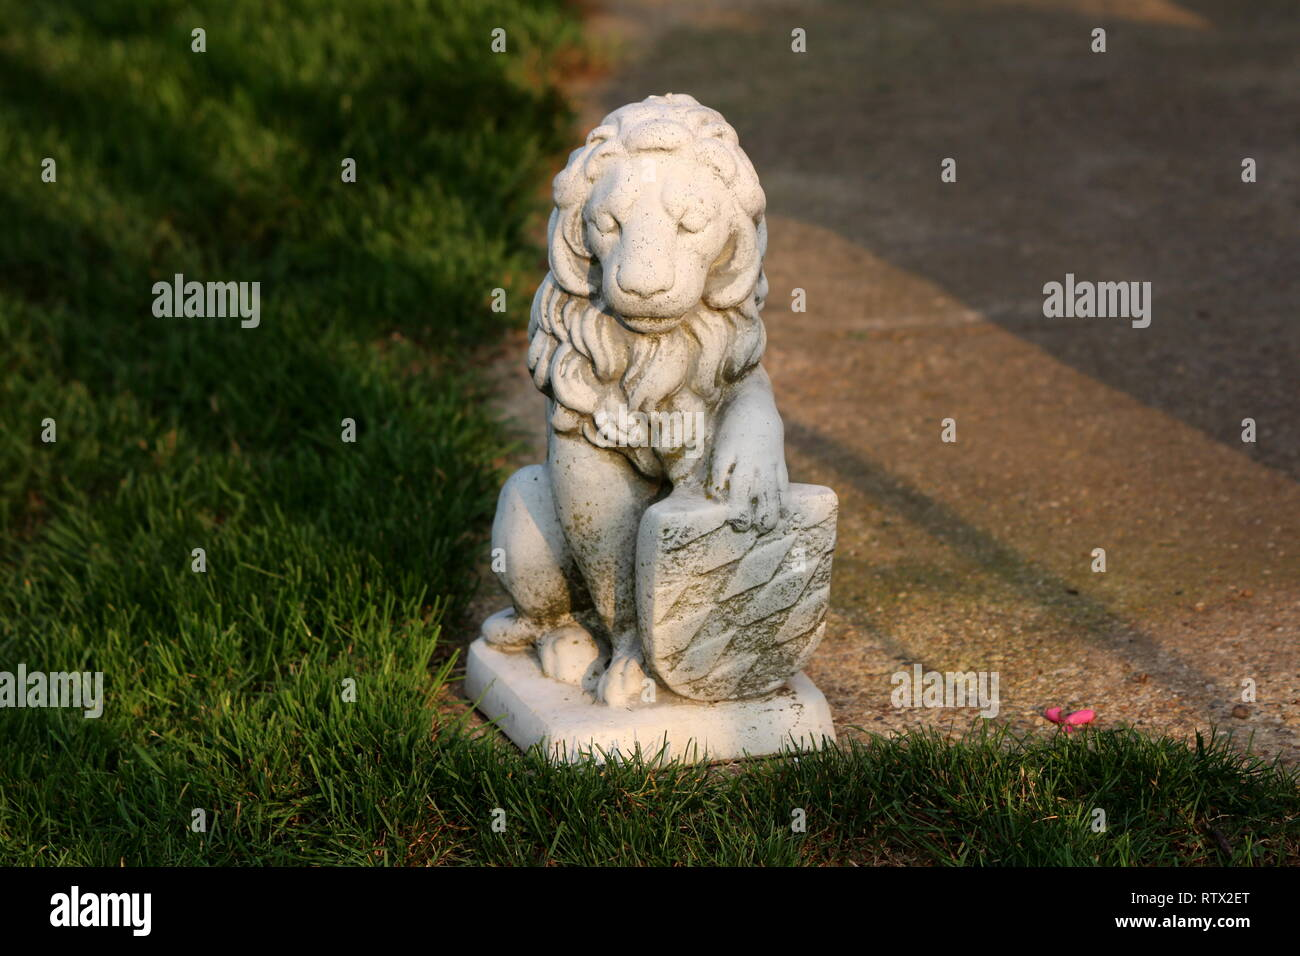 Concrete sculpture of mighty lion holding shield on edge of concrete path surrounded with grass on warm sunny day at sunset - Stock Image